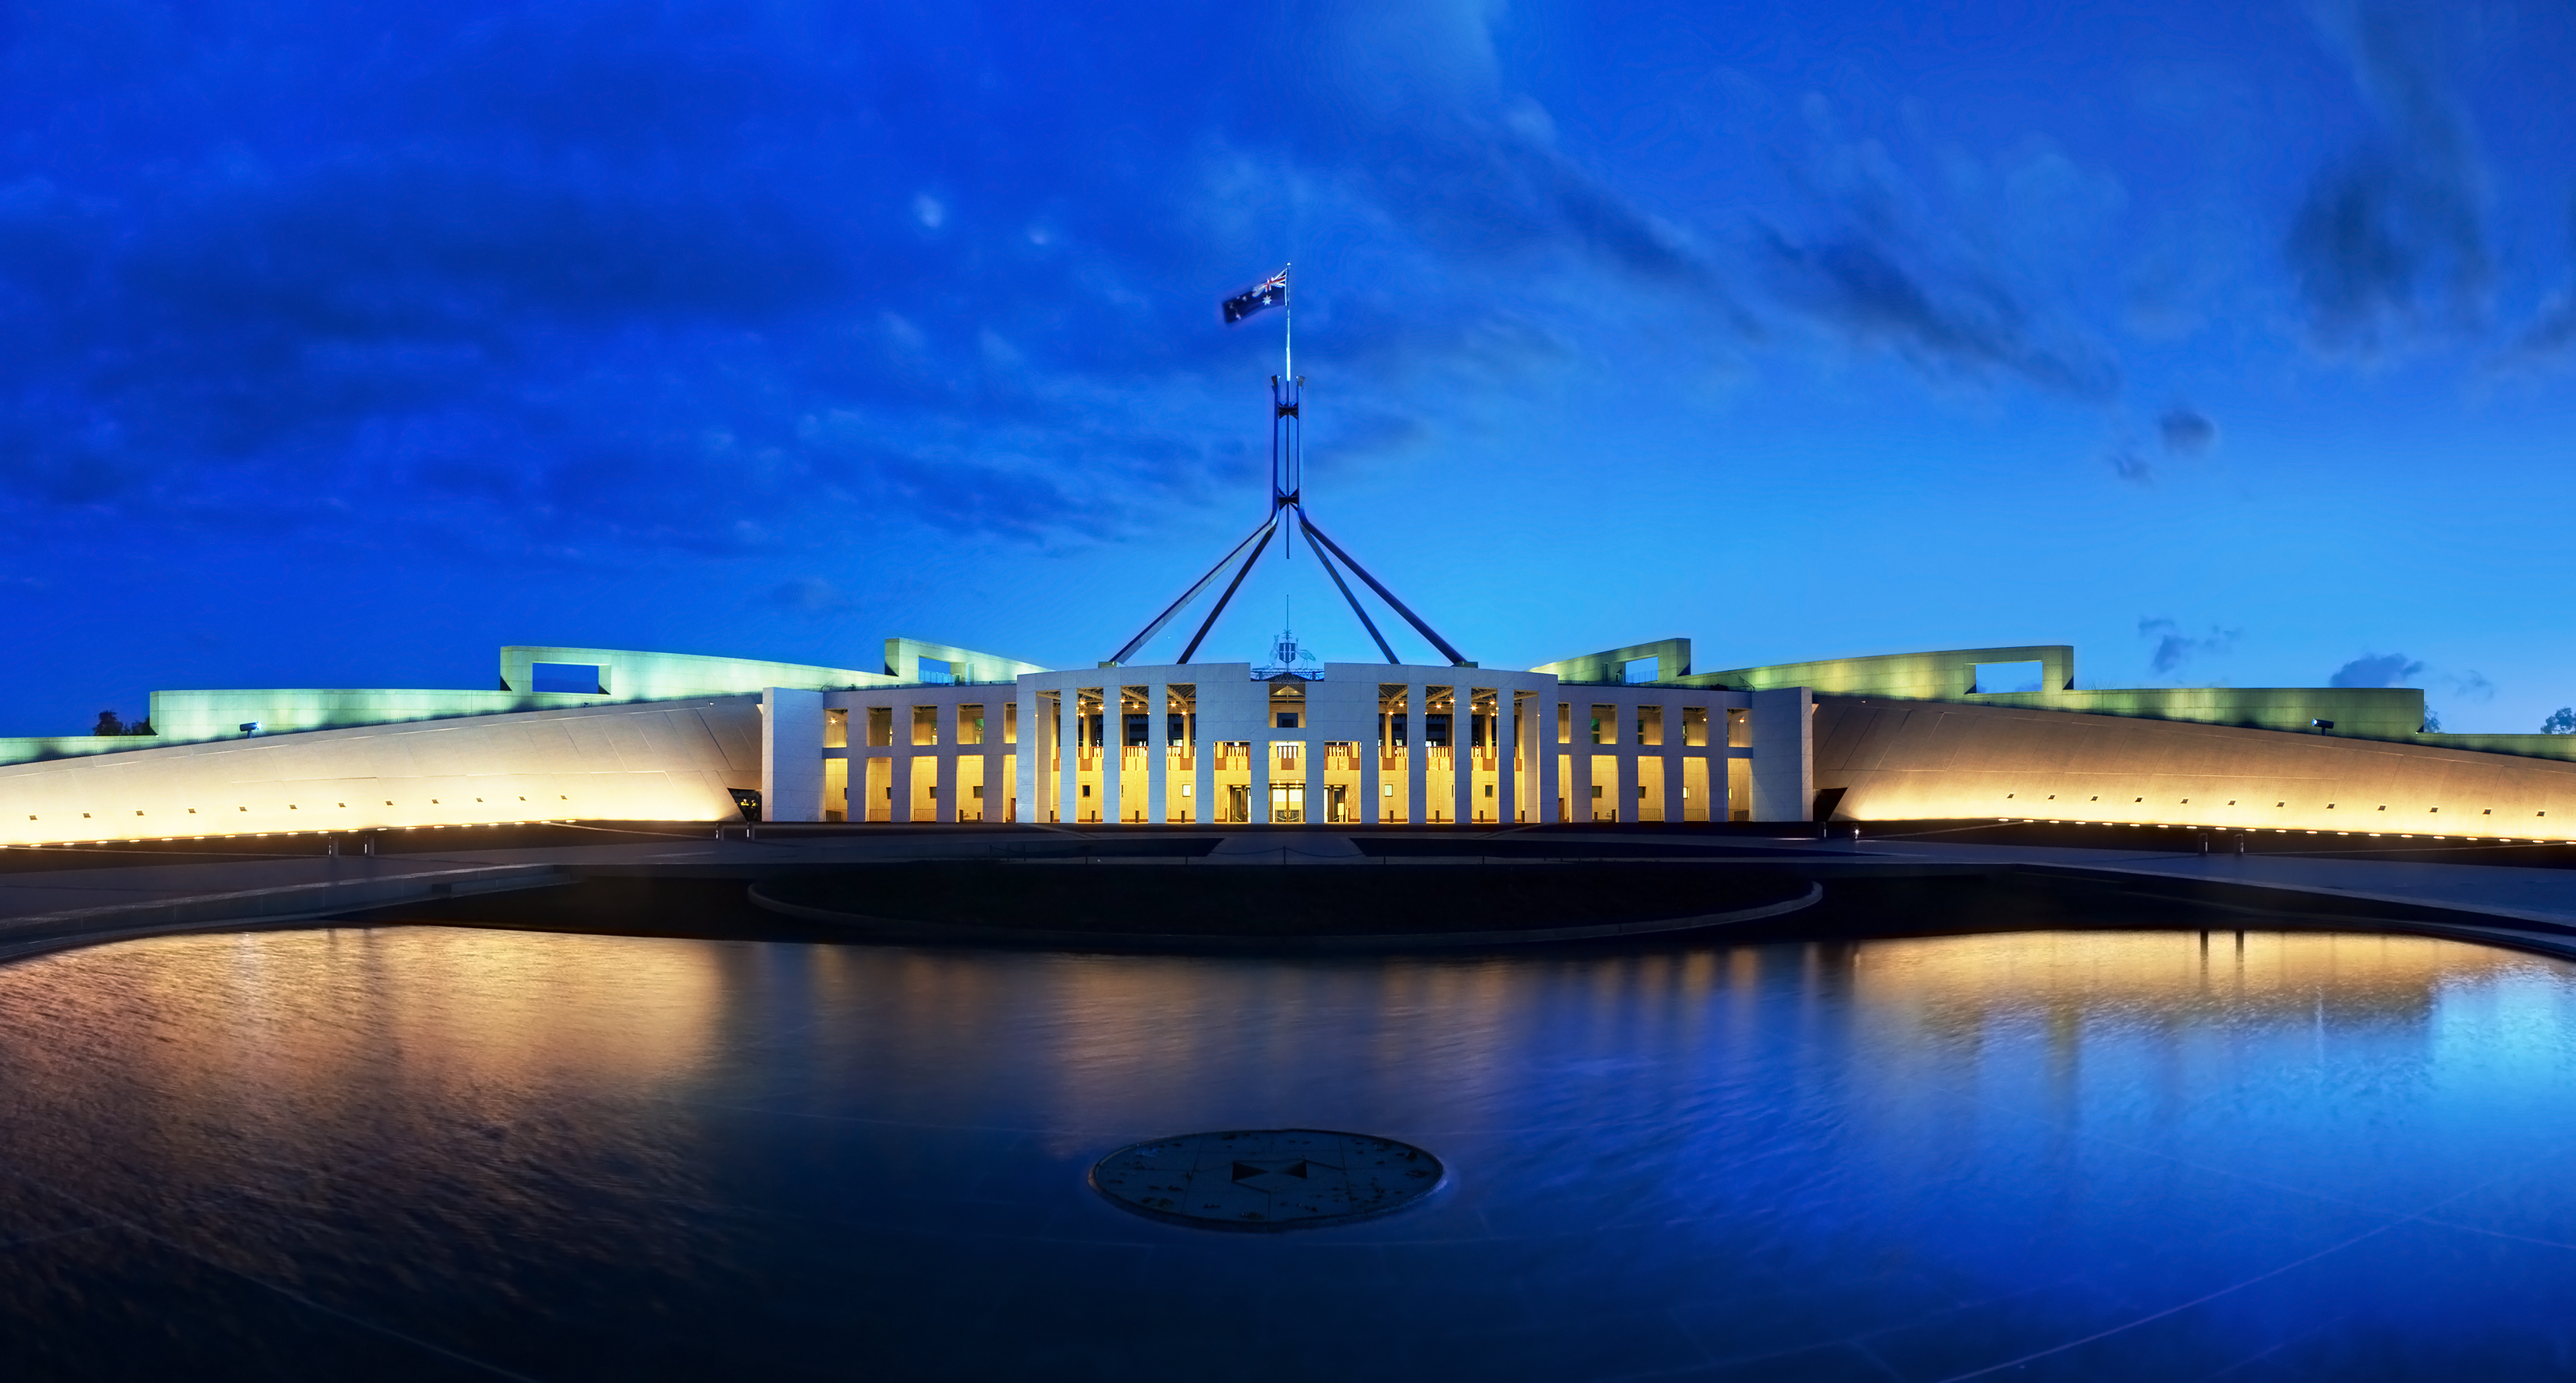 Parliament House in the Australian capital Canberra